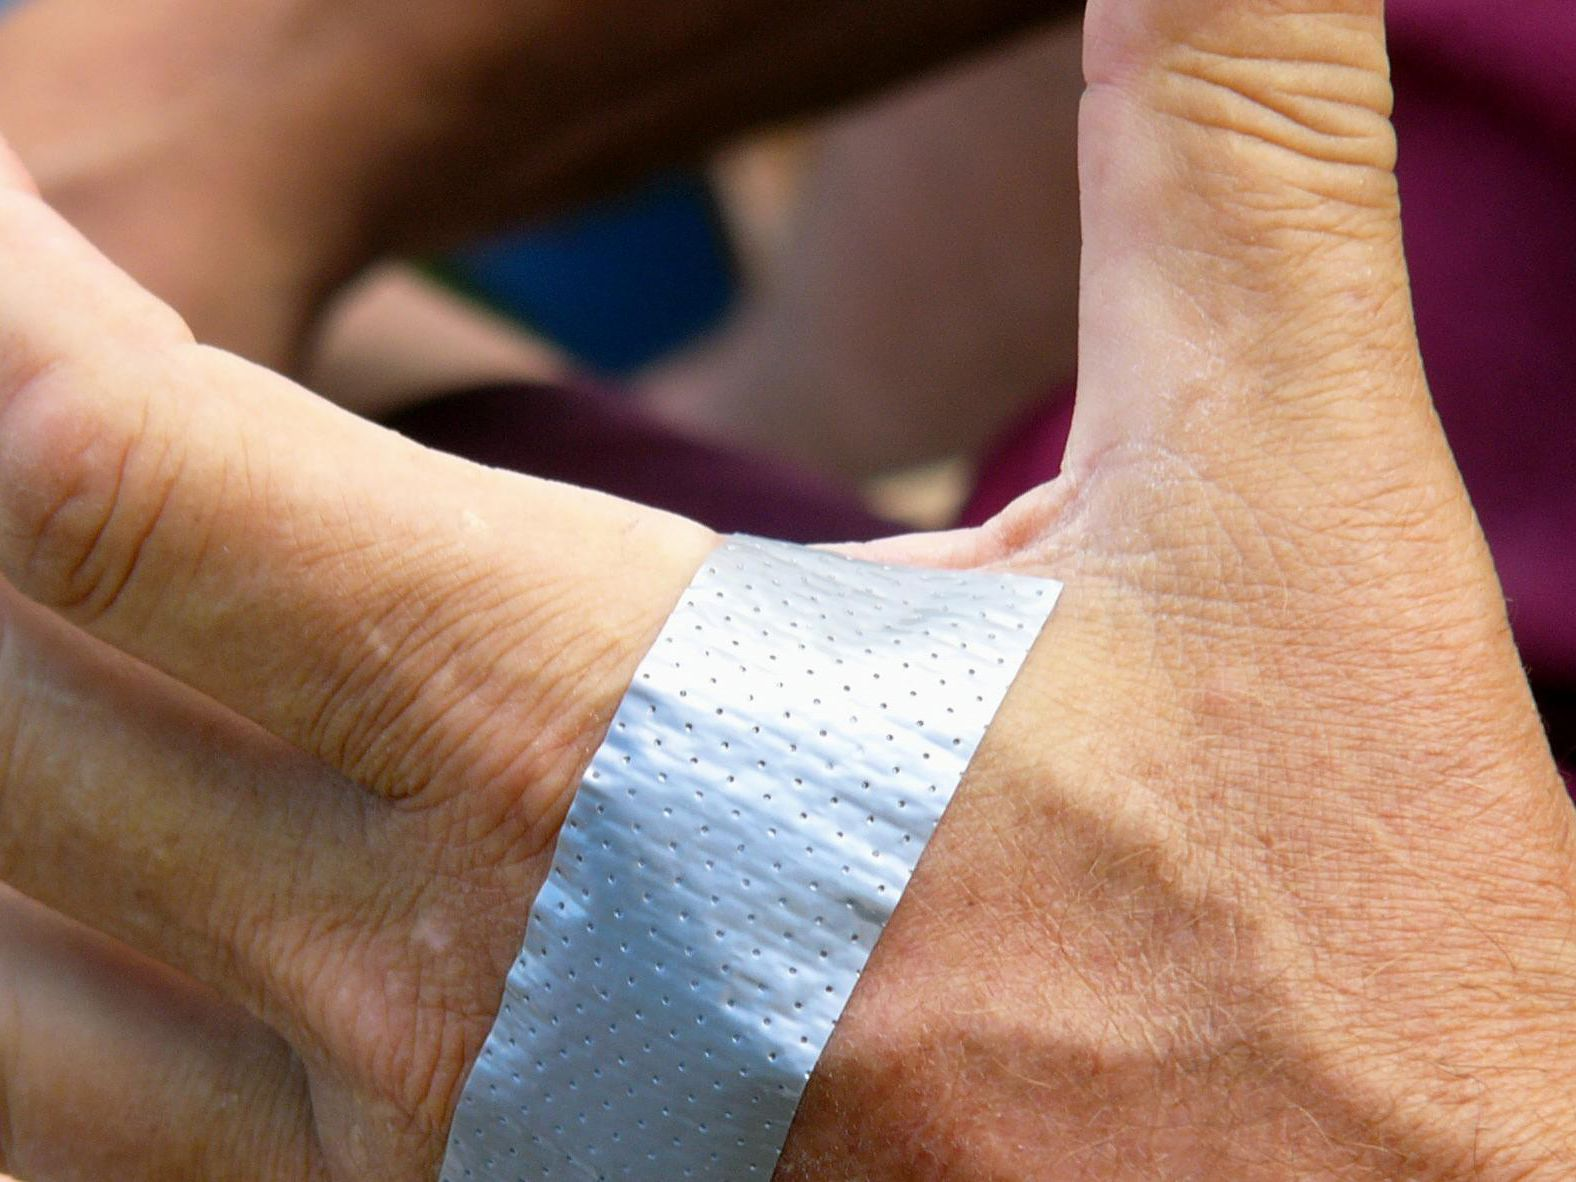 warts on hands duct tape)